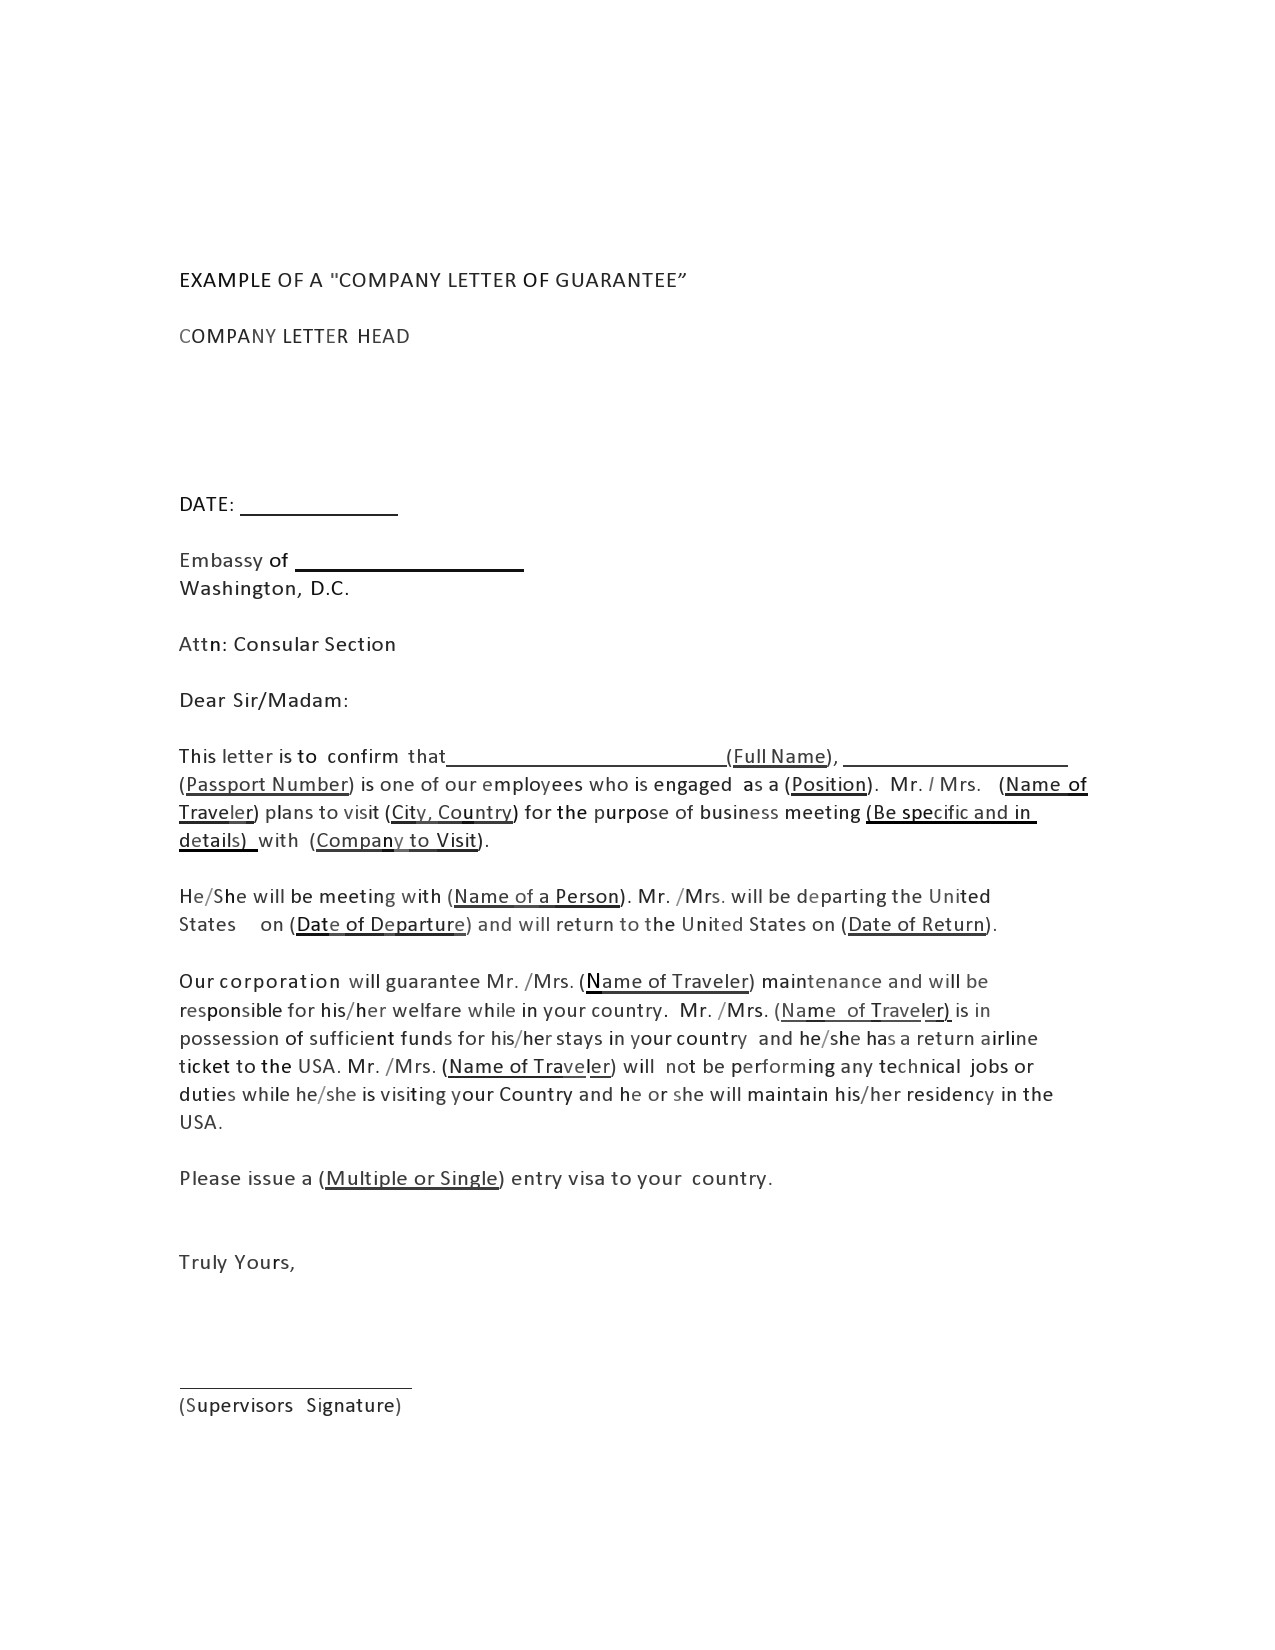 Free letter of guarantee 05